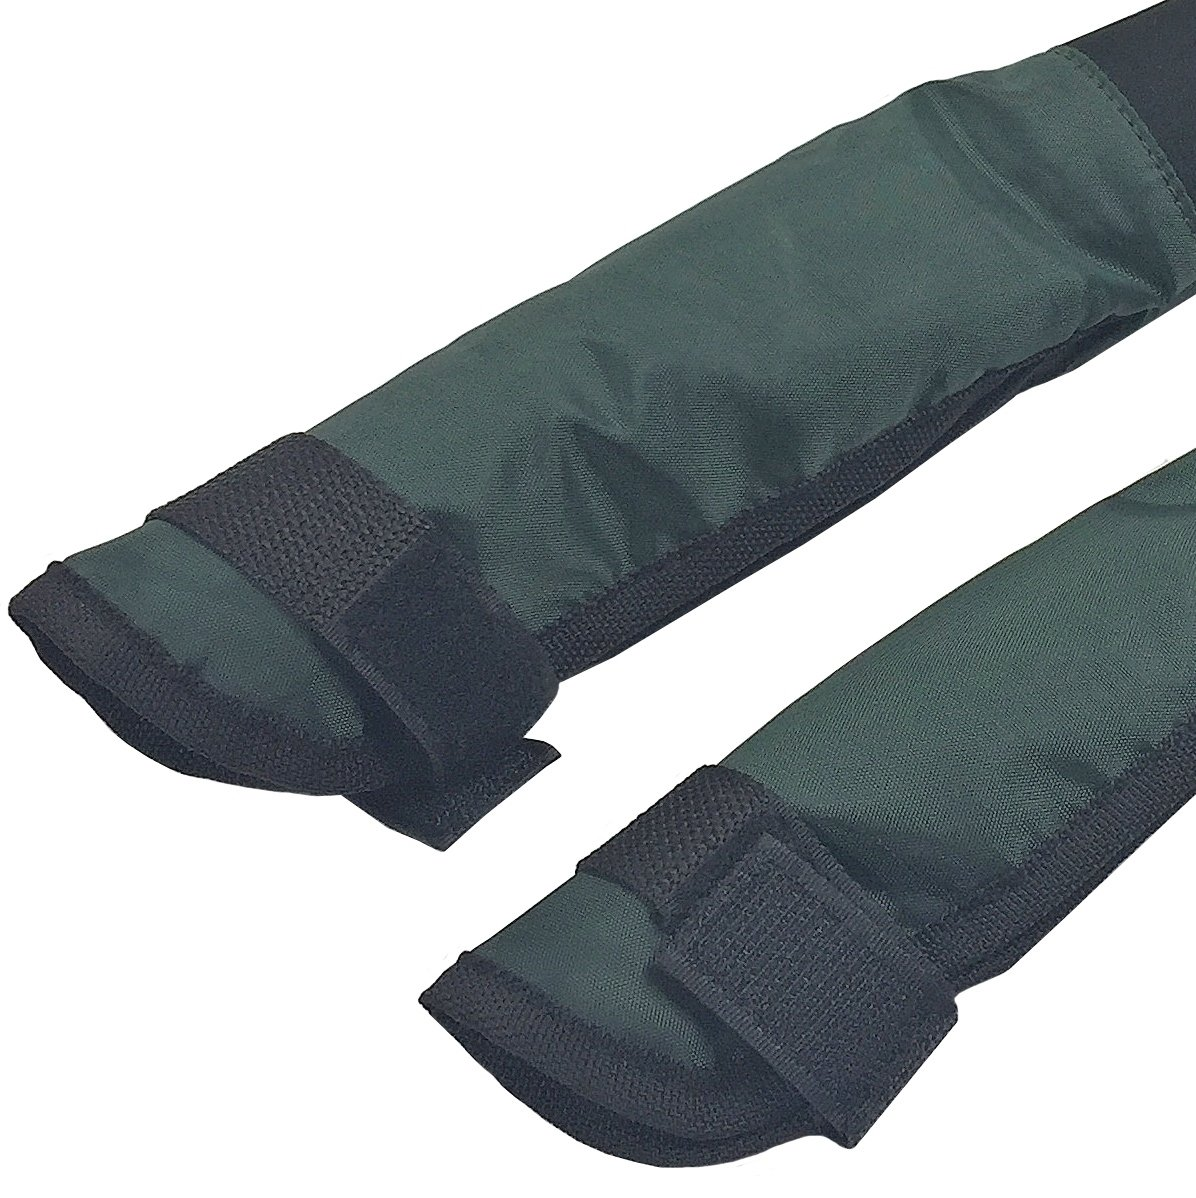 FLADEN 2 x Pack Fishing Rod TIP and BUTT Neoprene Protection Sleeves For Carp and Coarse Fishing 36-0019